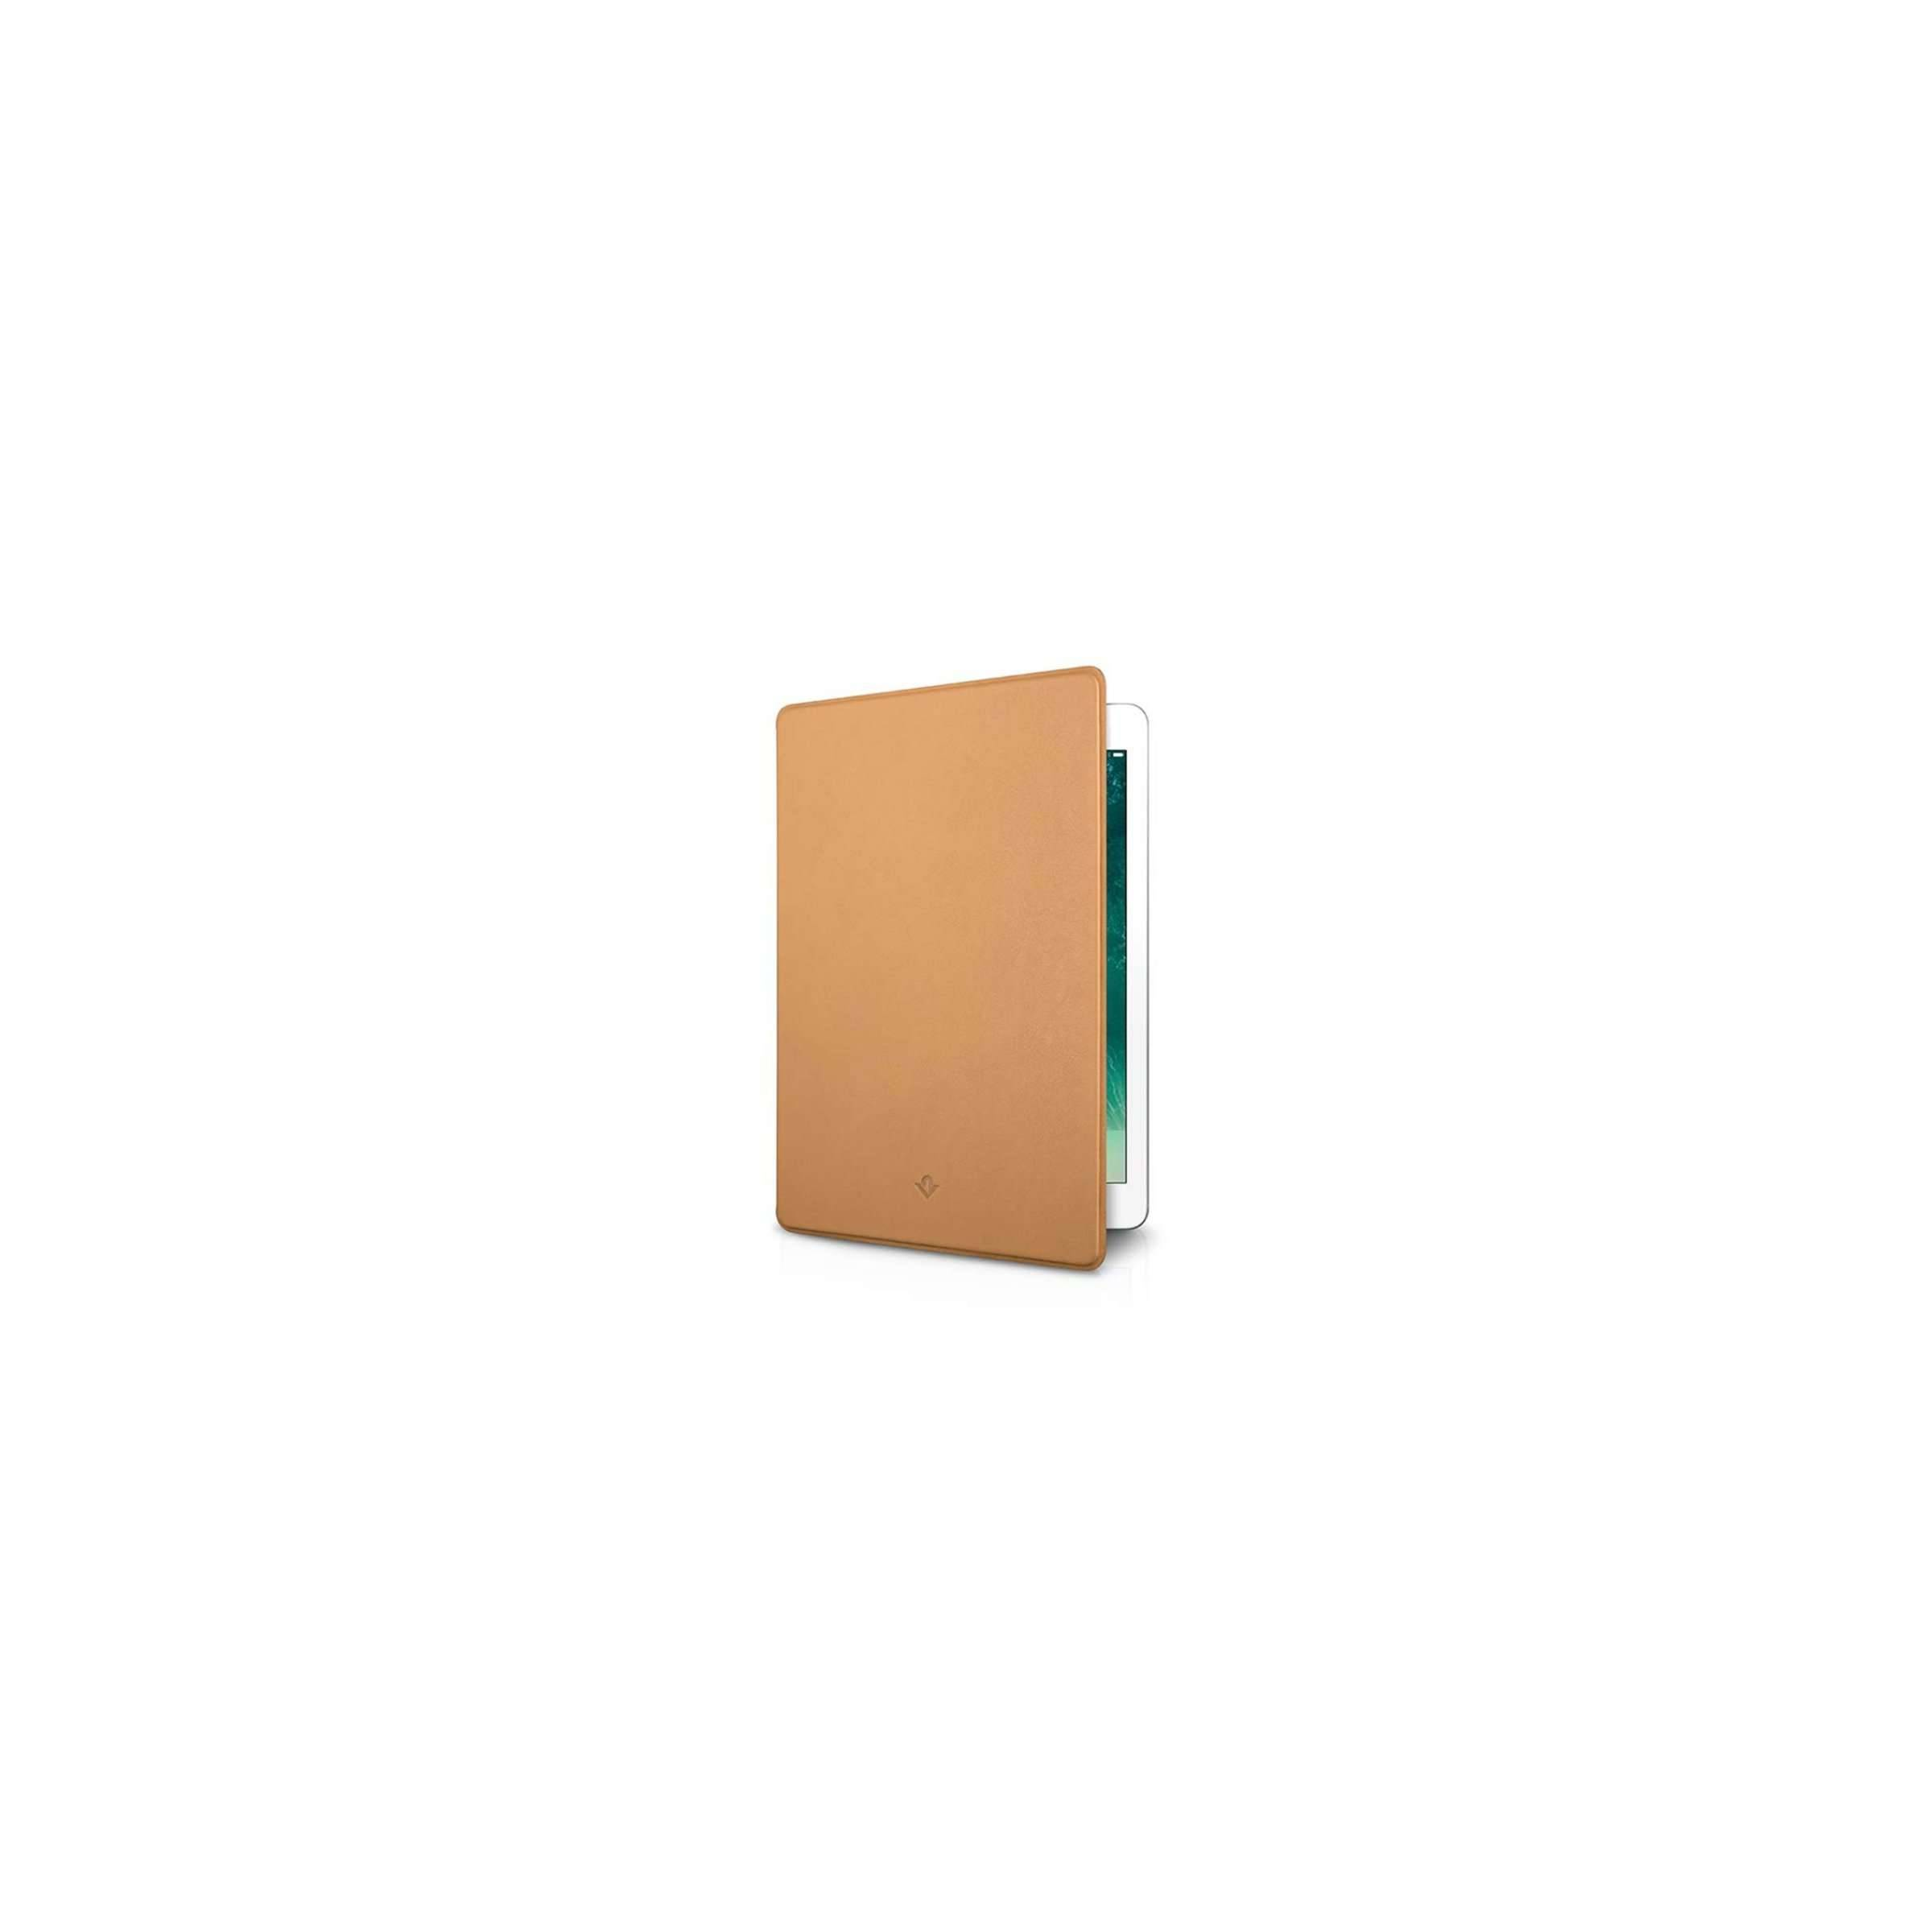 "twelve south Twelve south surfacepad til ipad 10.5"" (2019) and ipad pro 10.5 - luxury leather case farve camel på mackabler.dk"